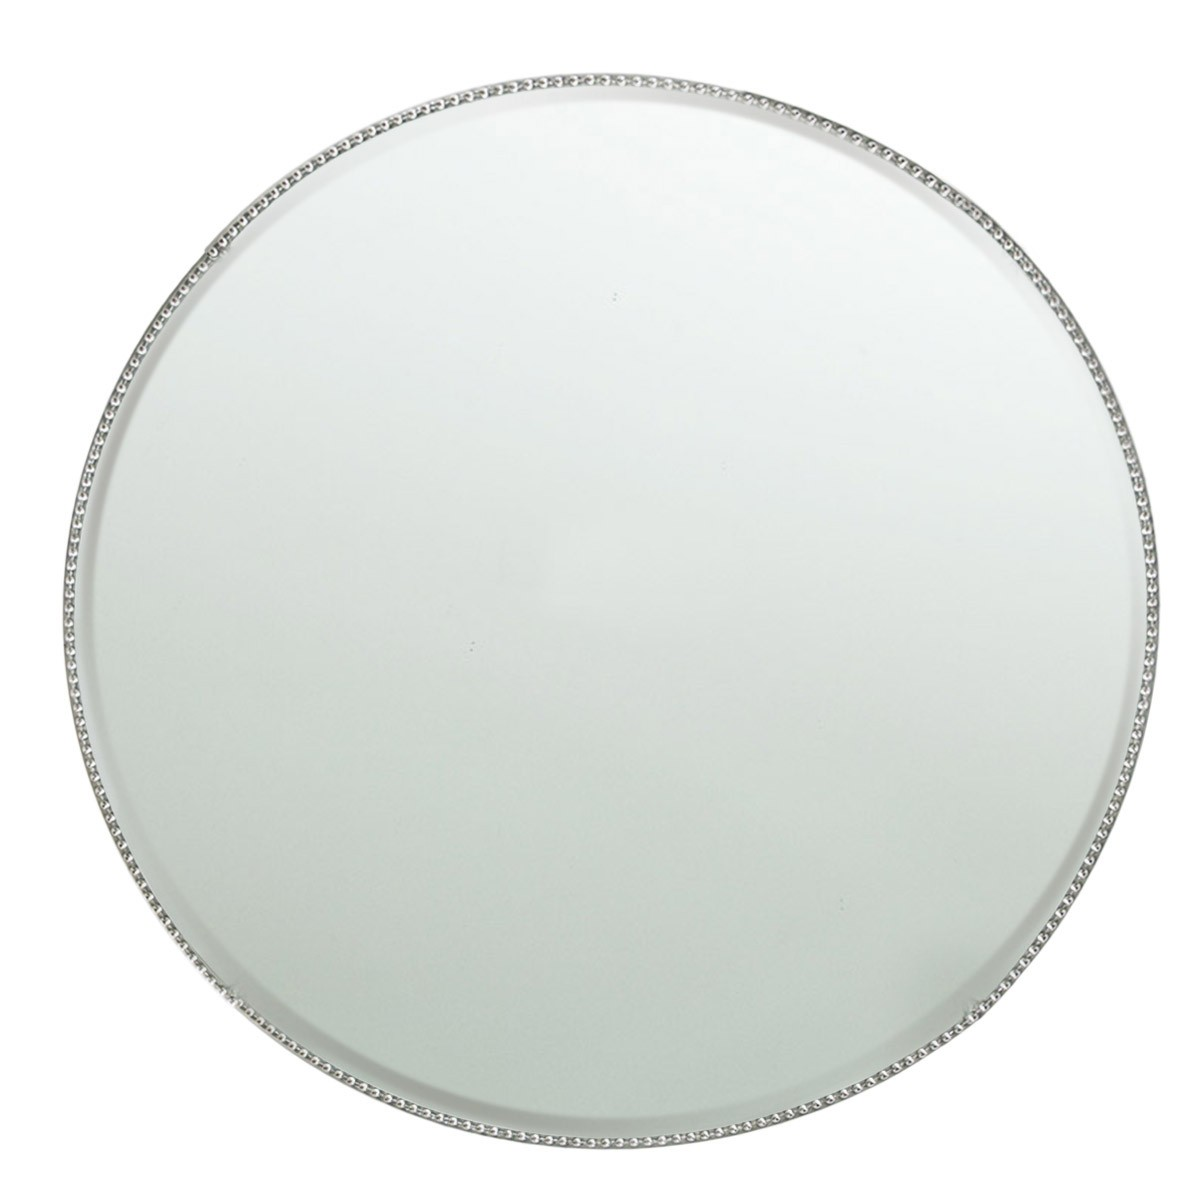 "Jay Import 1331677 Chargeit! By Jay Bead Mirror Glass 13"" Charger Plate"